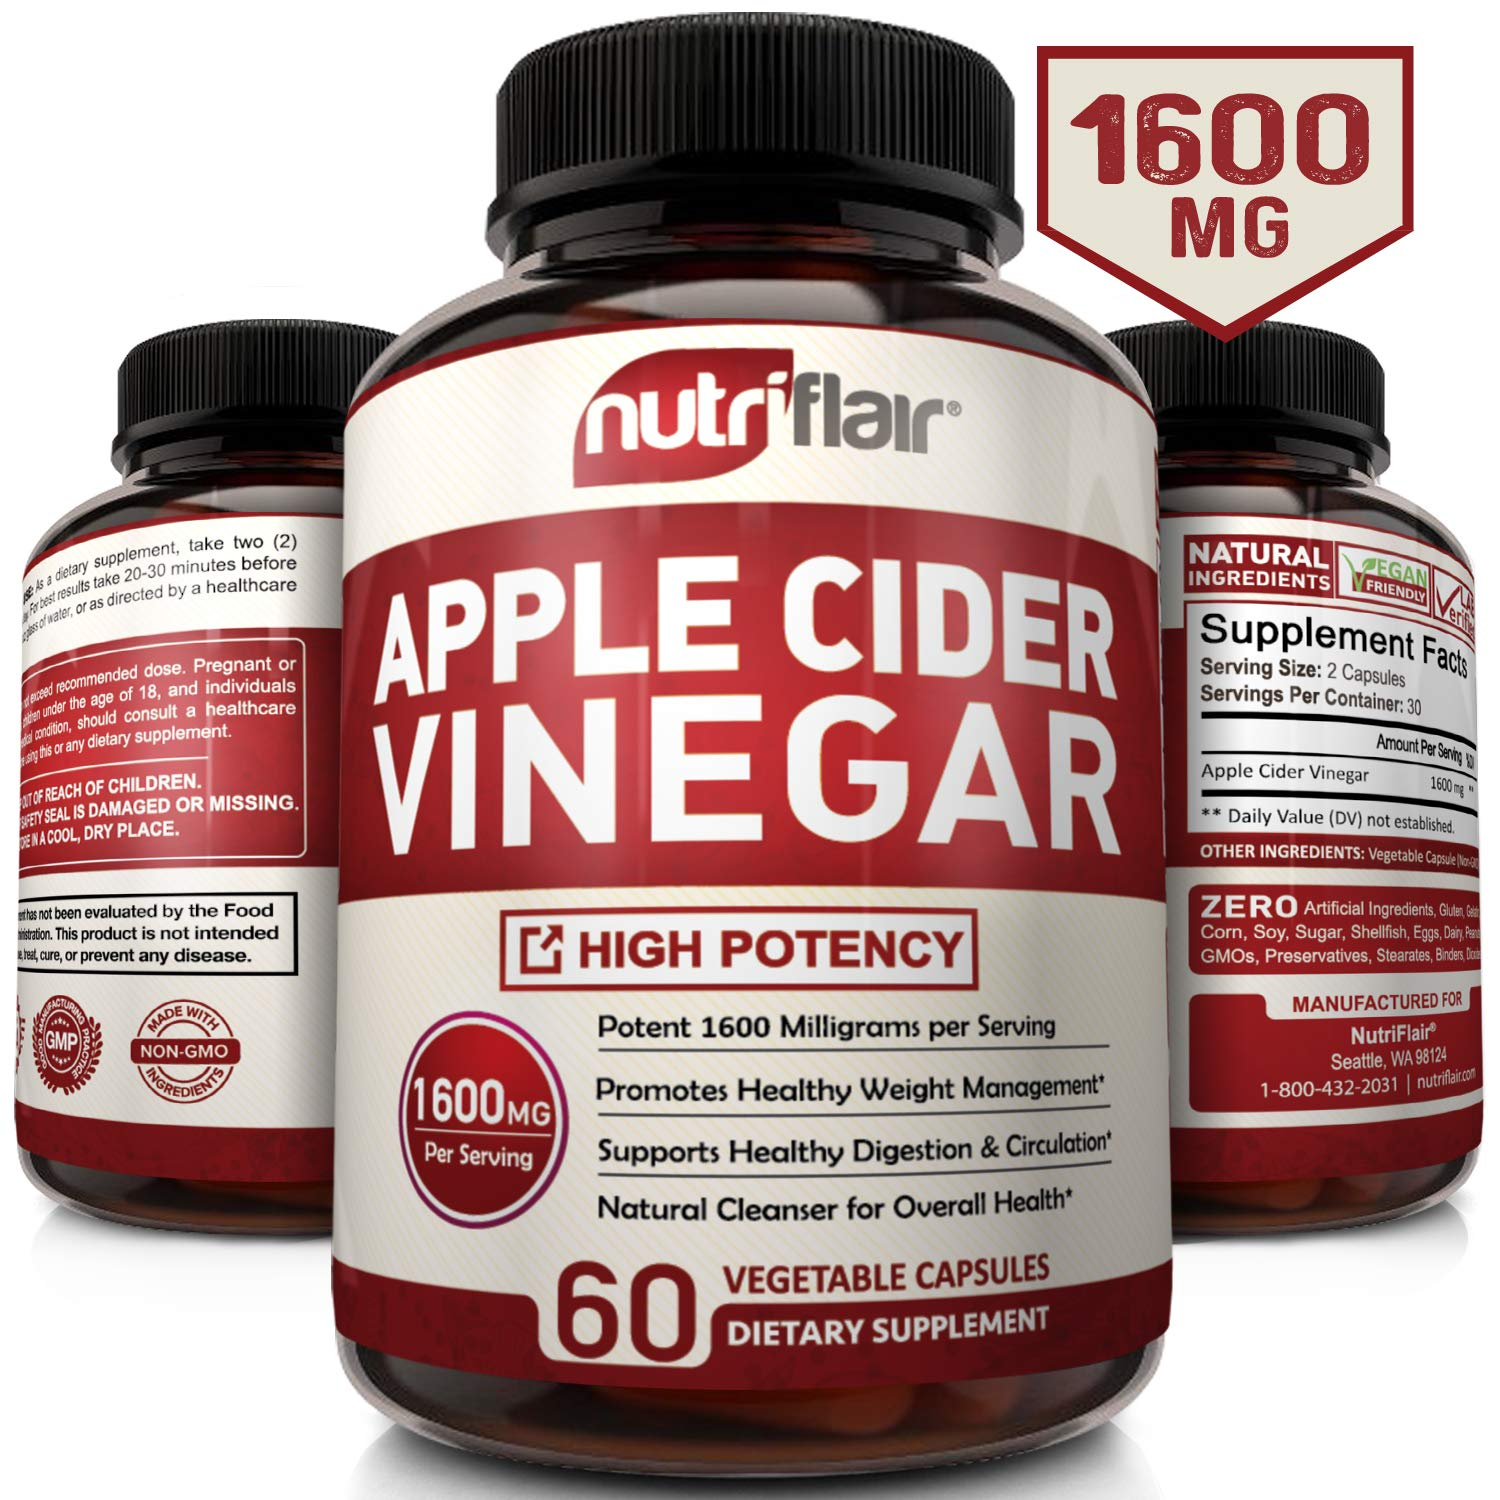 Apple Cider Vinegar Pills 1600MG - Powerful ACV Capsules for Natural Weight Loss, Detox, Digestion - Supports Healthy Blood Sugar & Immune System (60 Veggie Capsules)